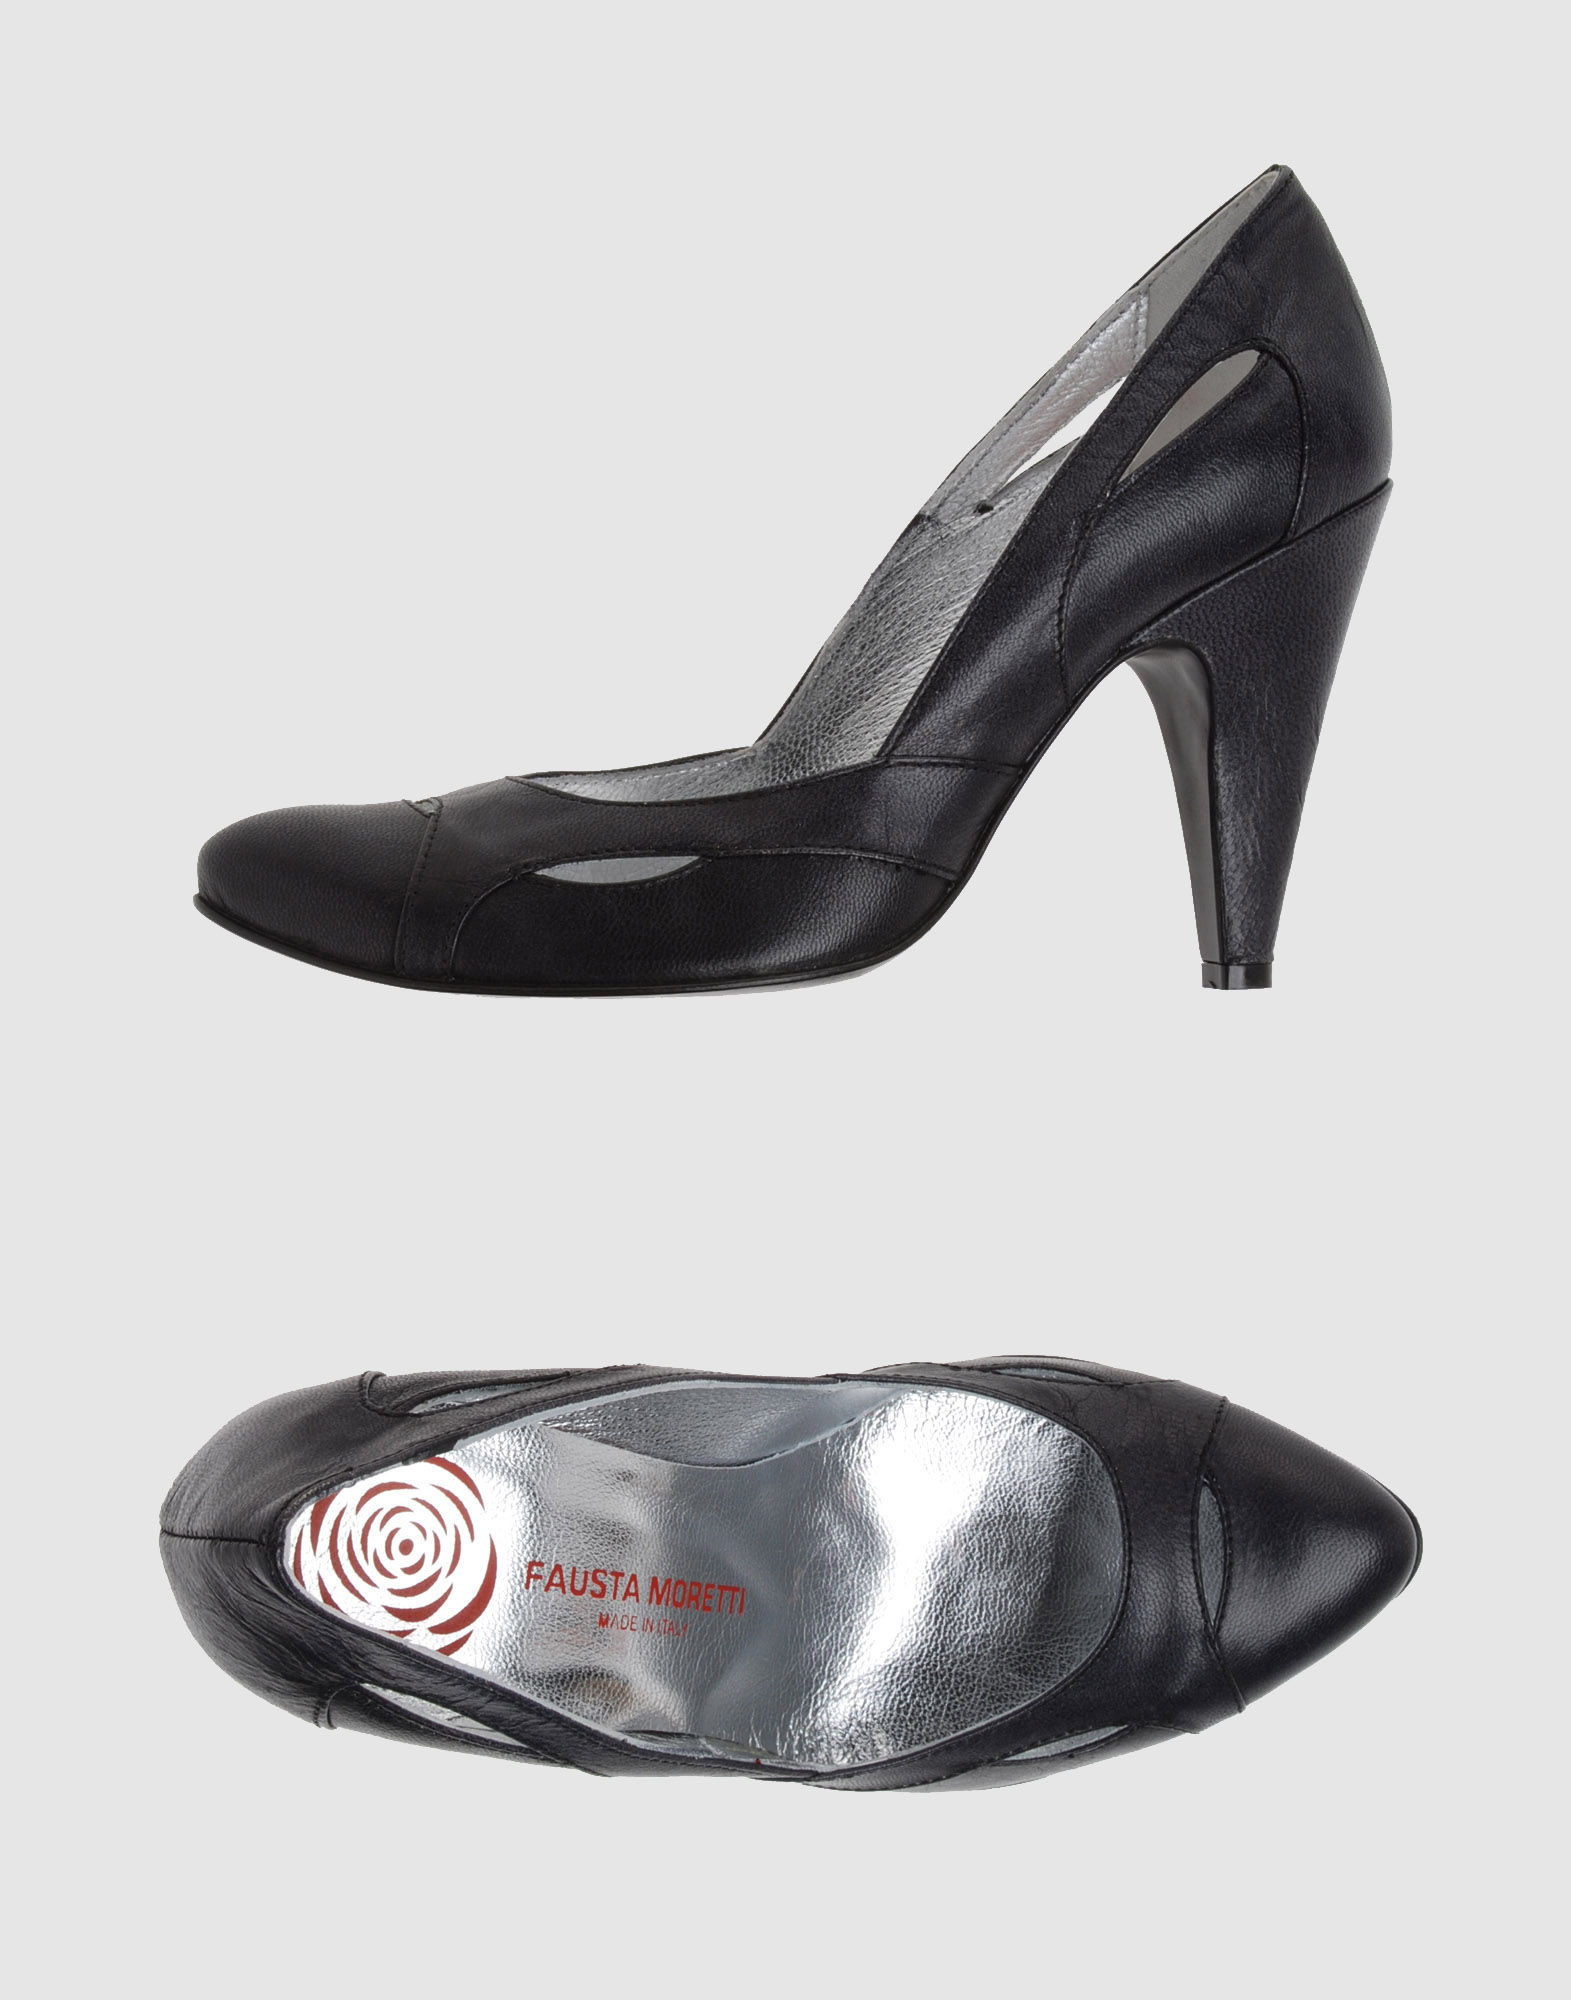 FAUSTA MORETTI Women - Footwear - Closed-toe slip-ons FAUSTA MORETTI on YOOX :  black leather women shoes